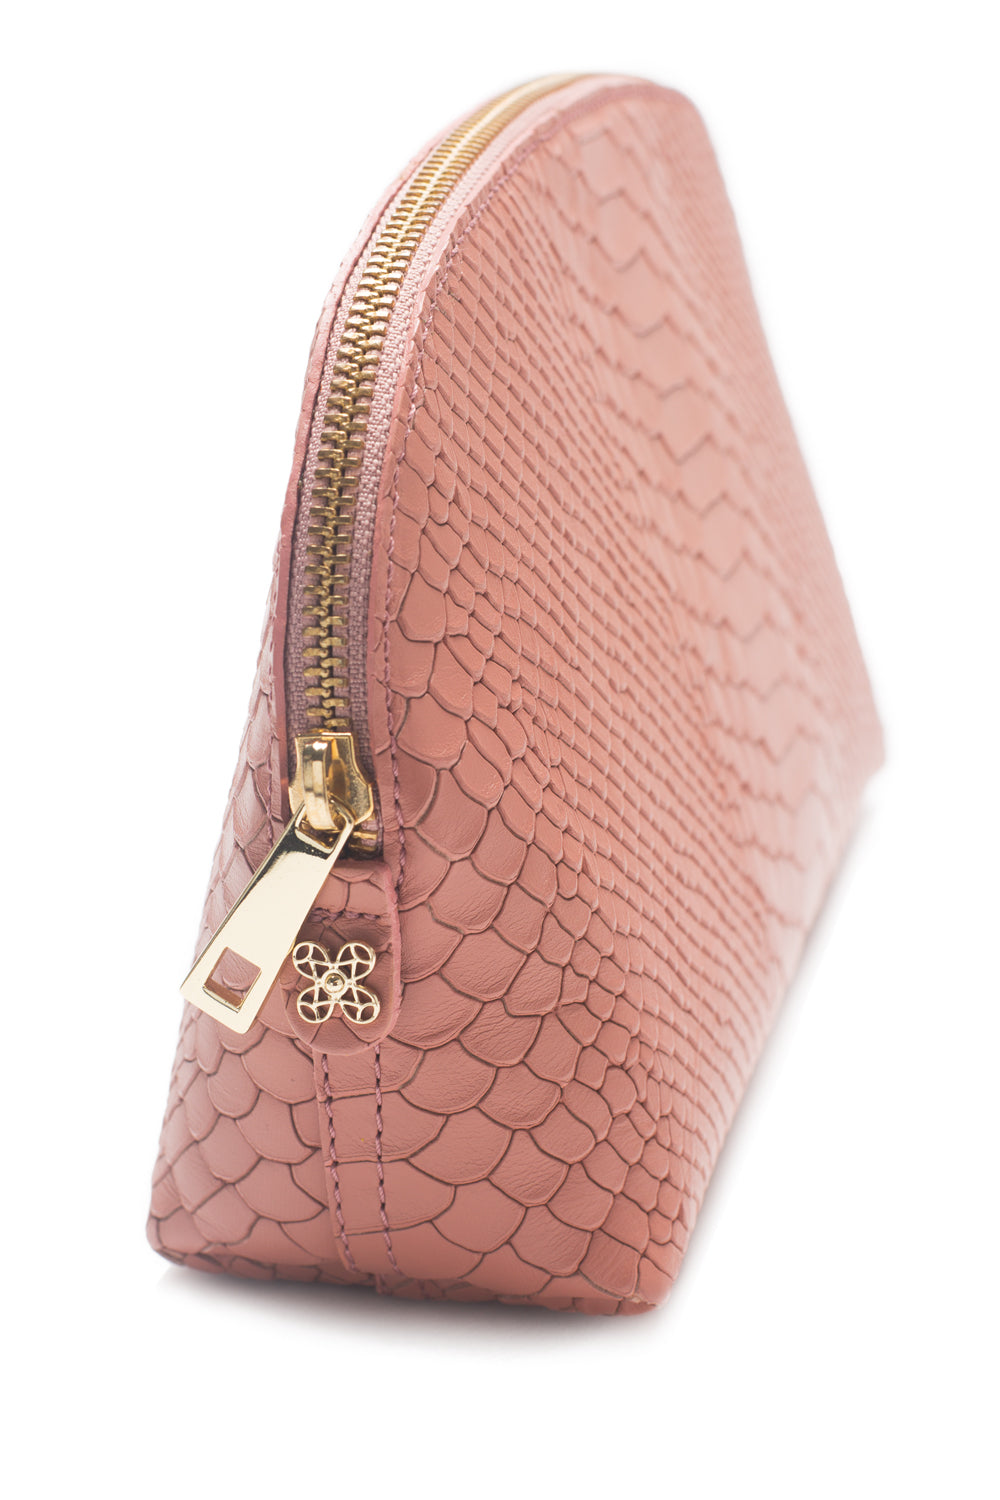 Cosmetics Clutch in Blush Snake-Effect Leather | Mel Boteri | Detail View